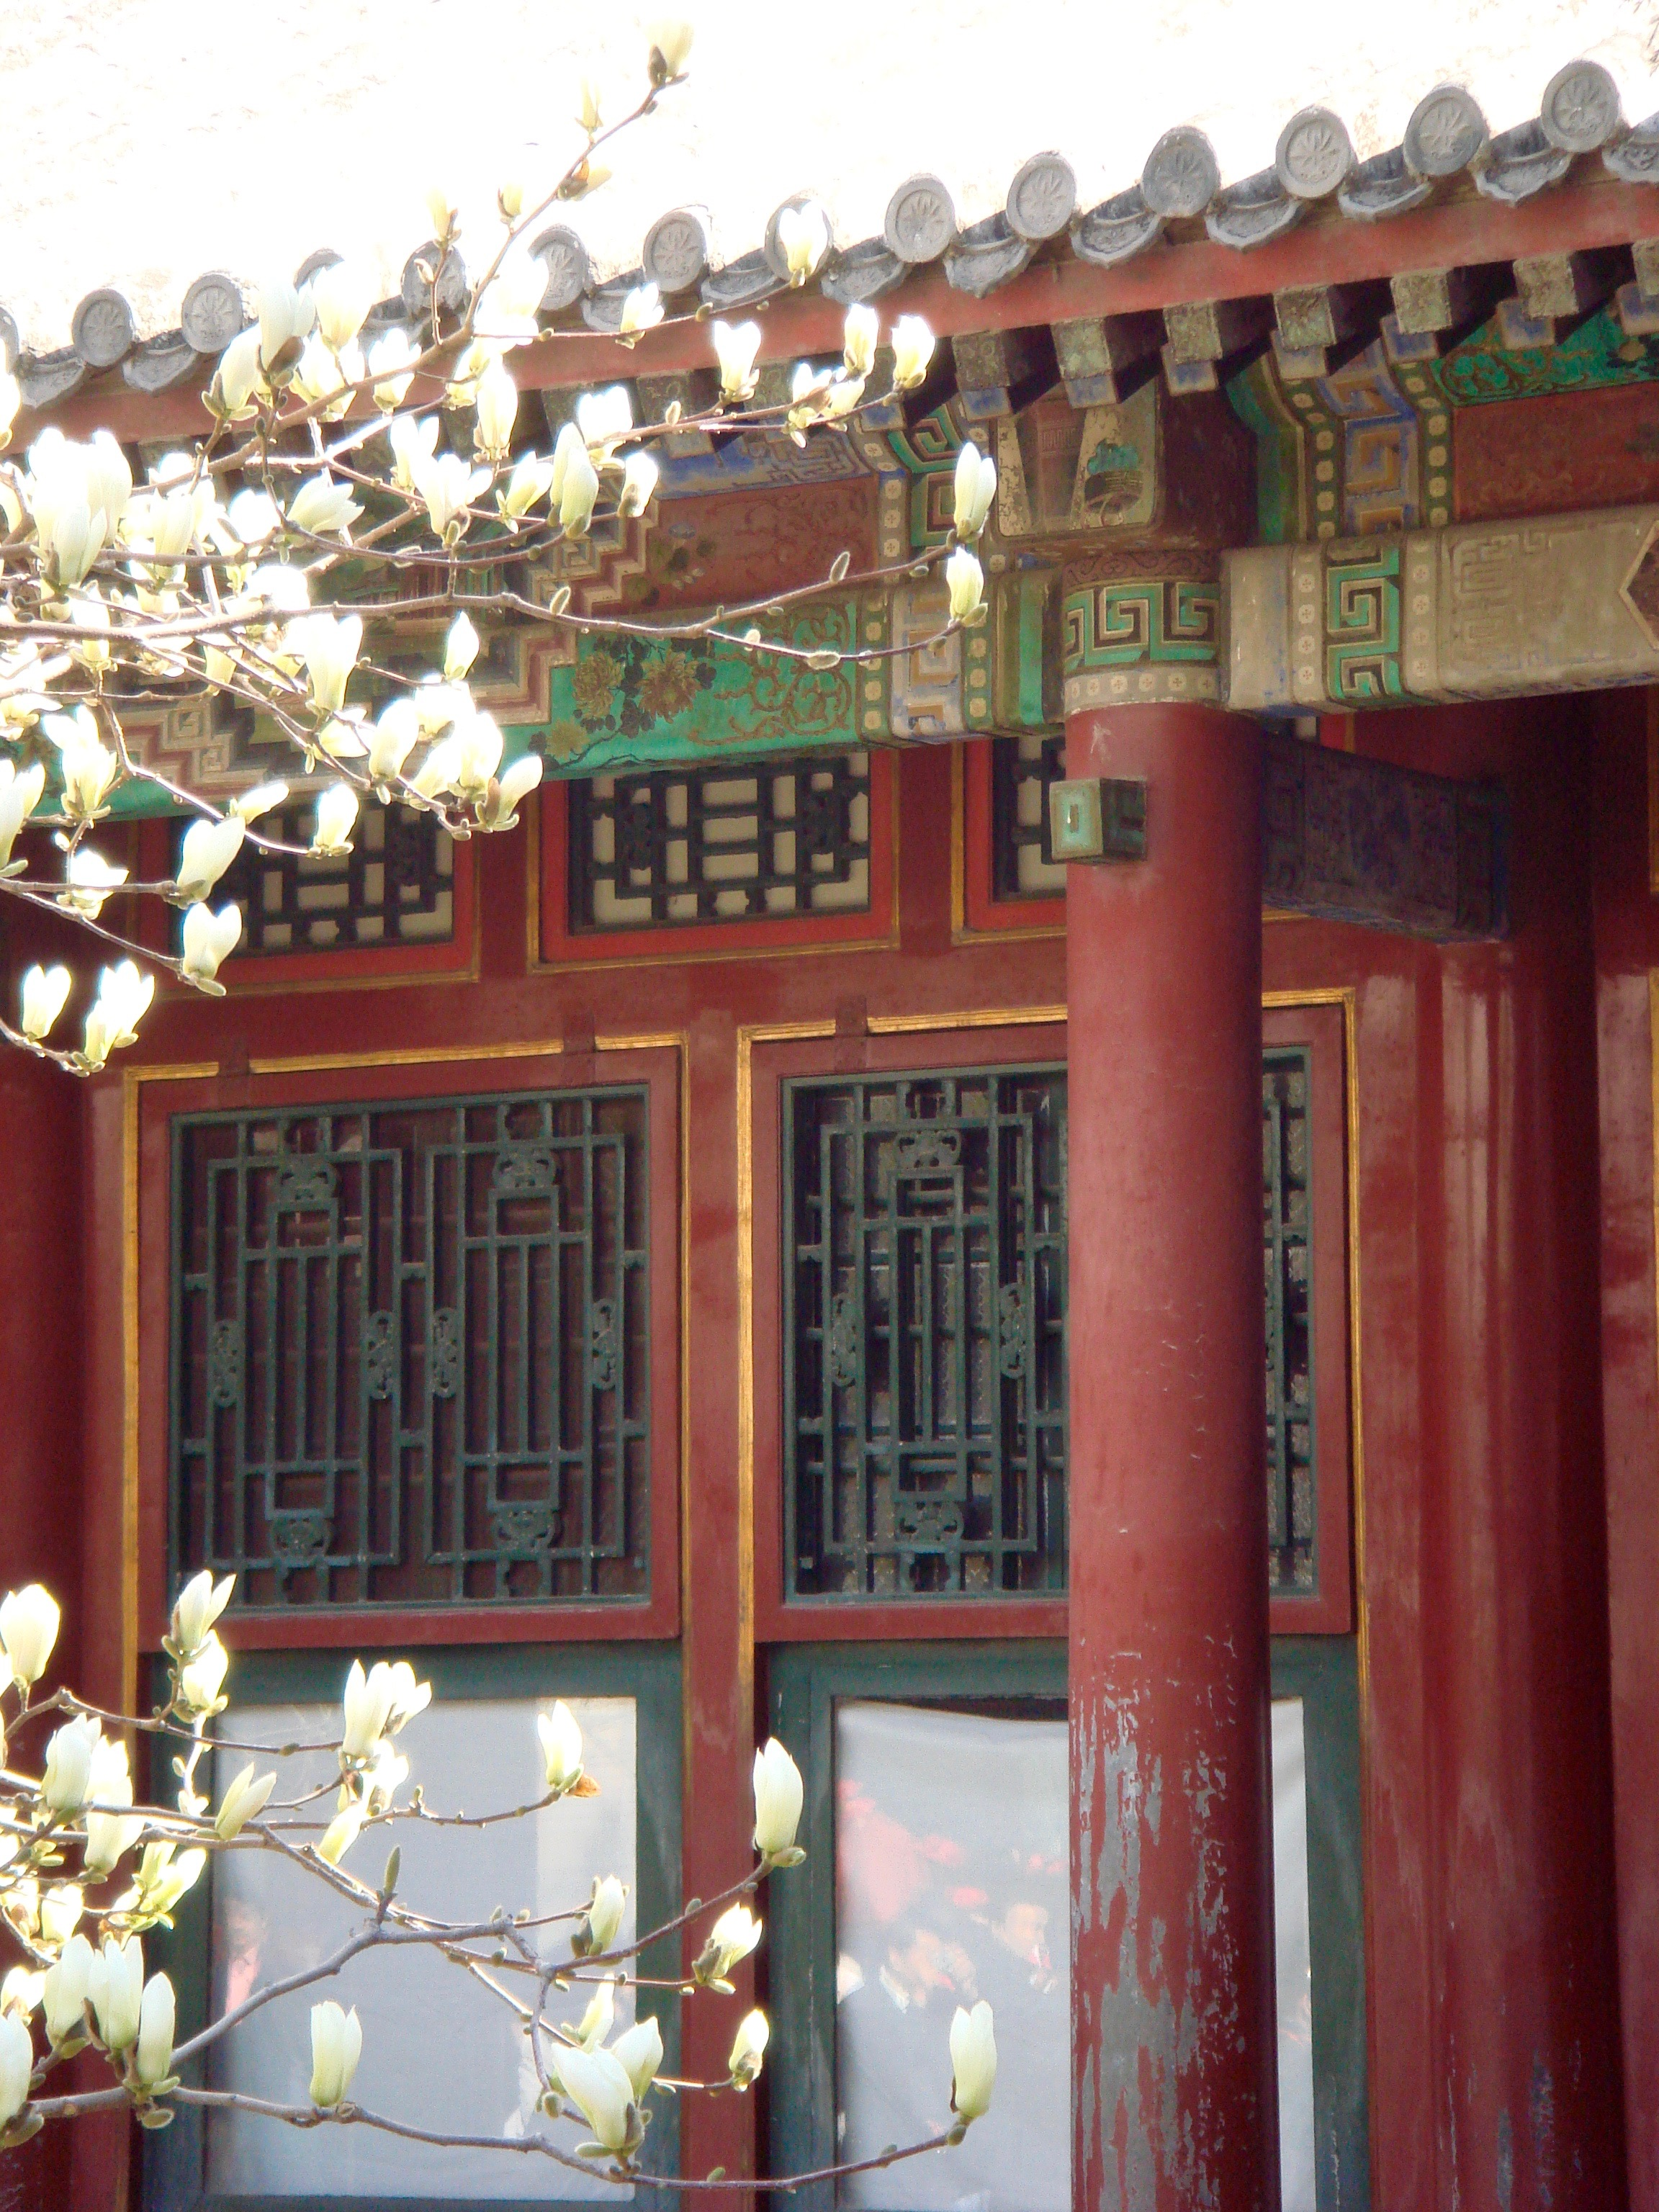 One of the many buildings at The Summer Palace just outside of Beijing, China